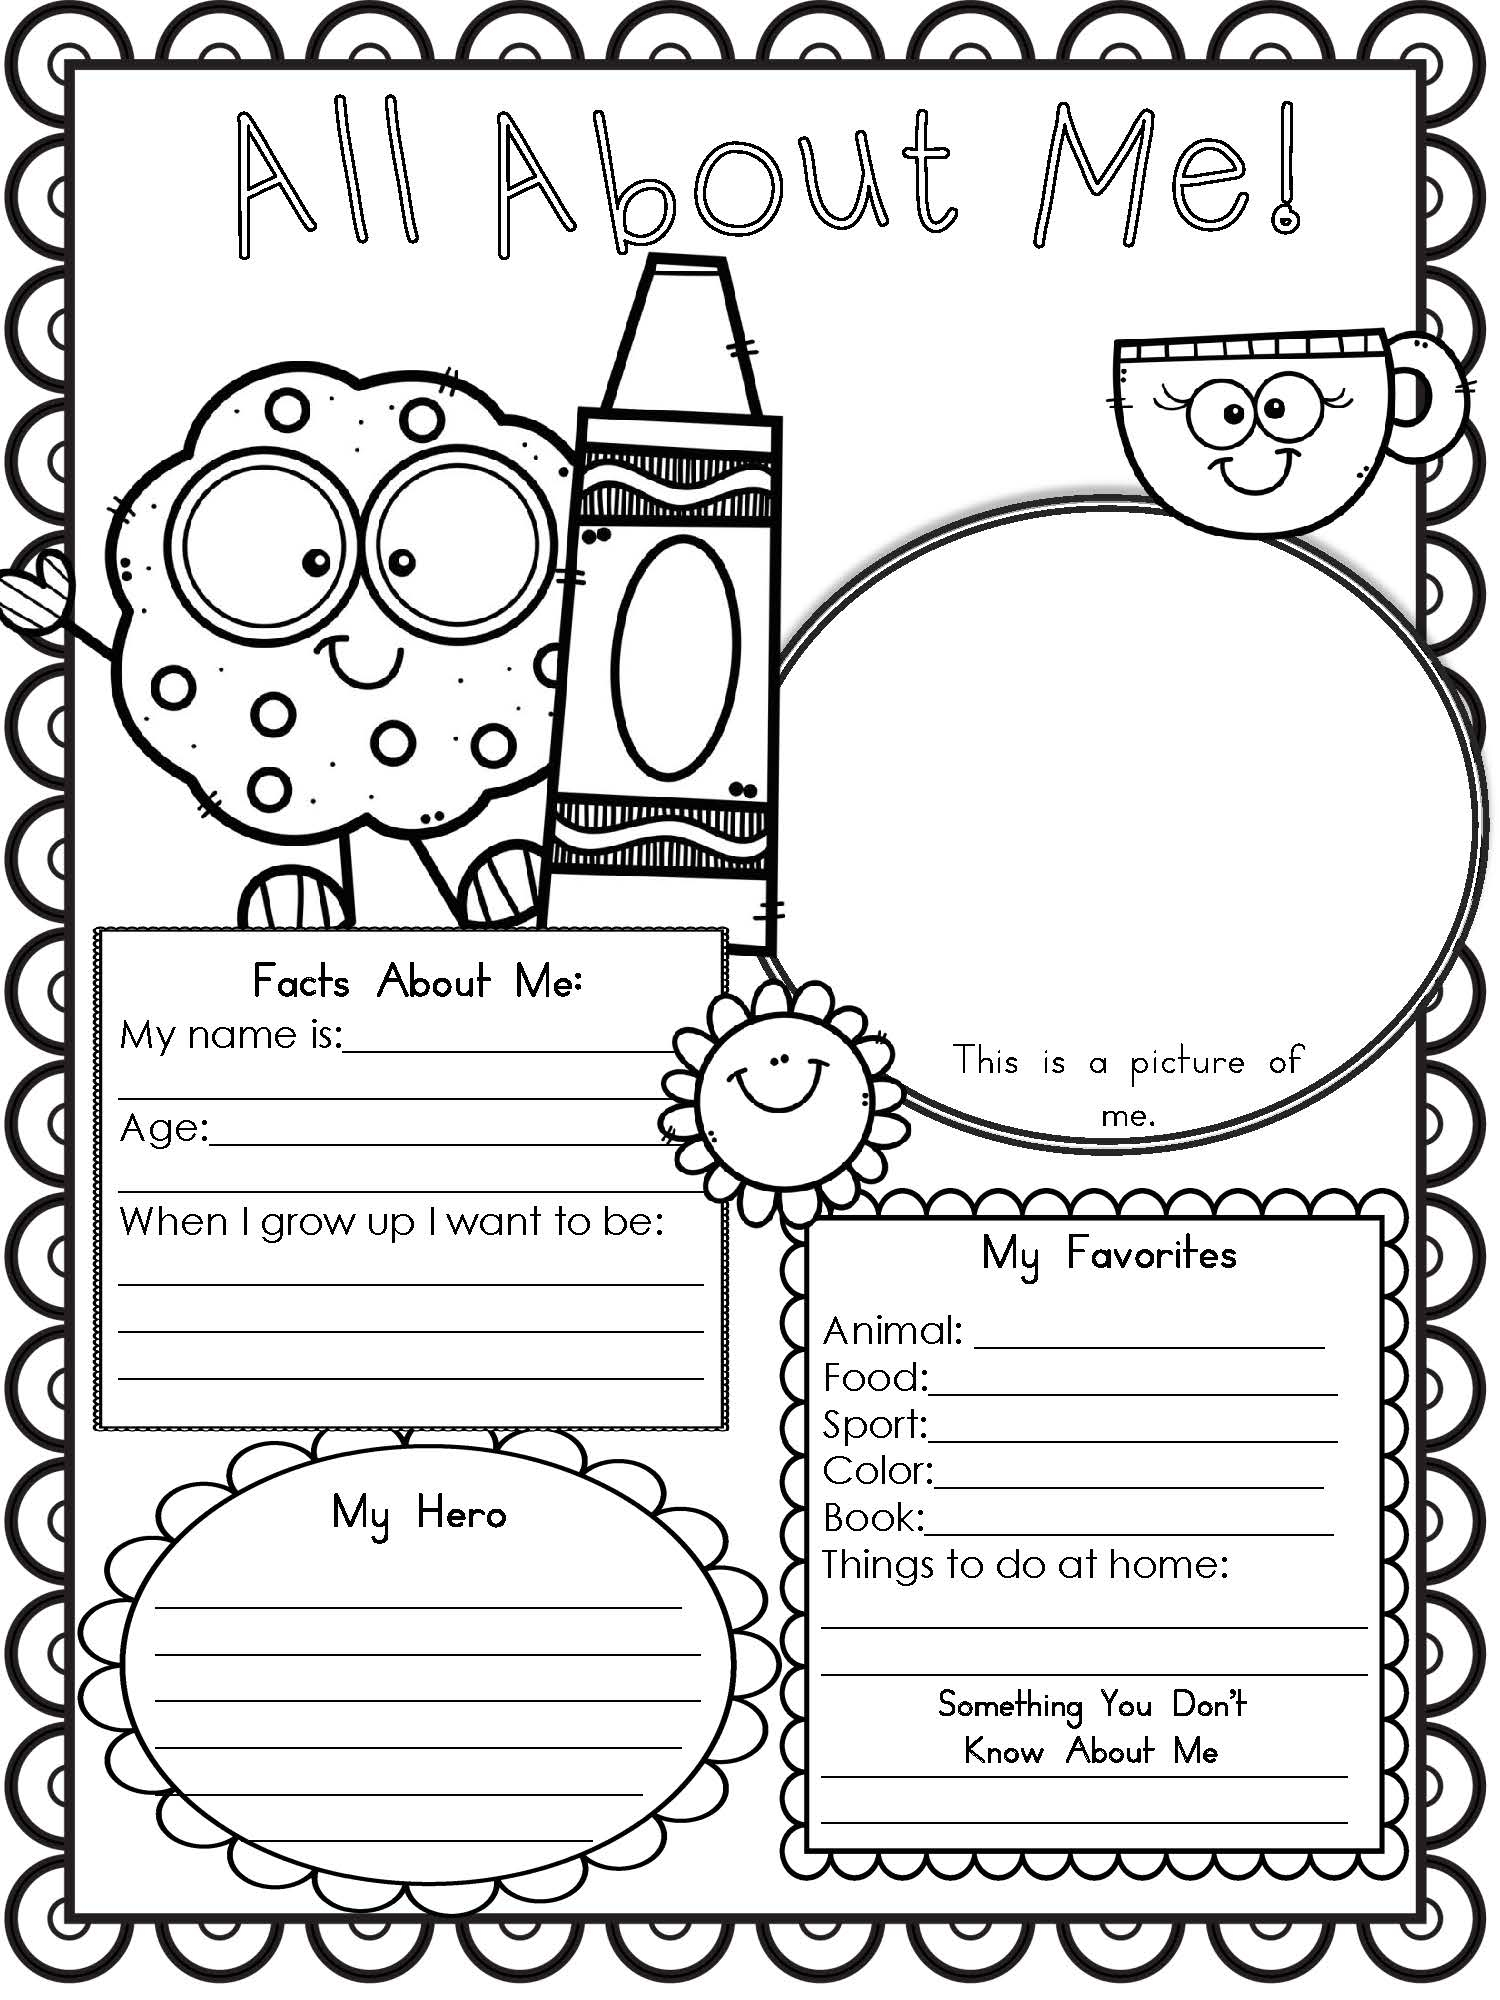 Free Printable All About Me Worksheet - Modern Homeschool Family | All About Me Printable Worksheets